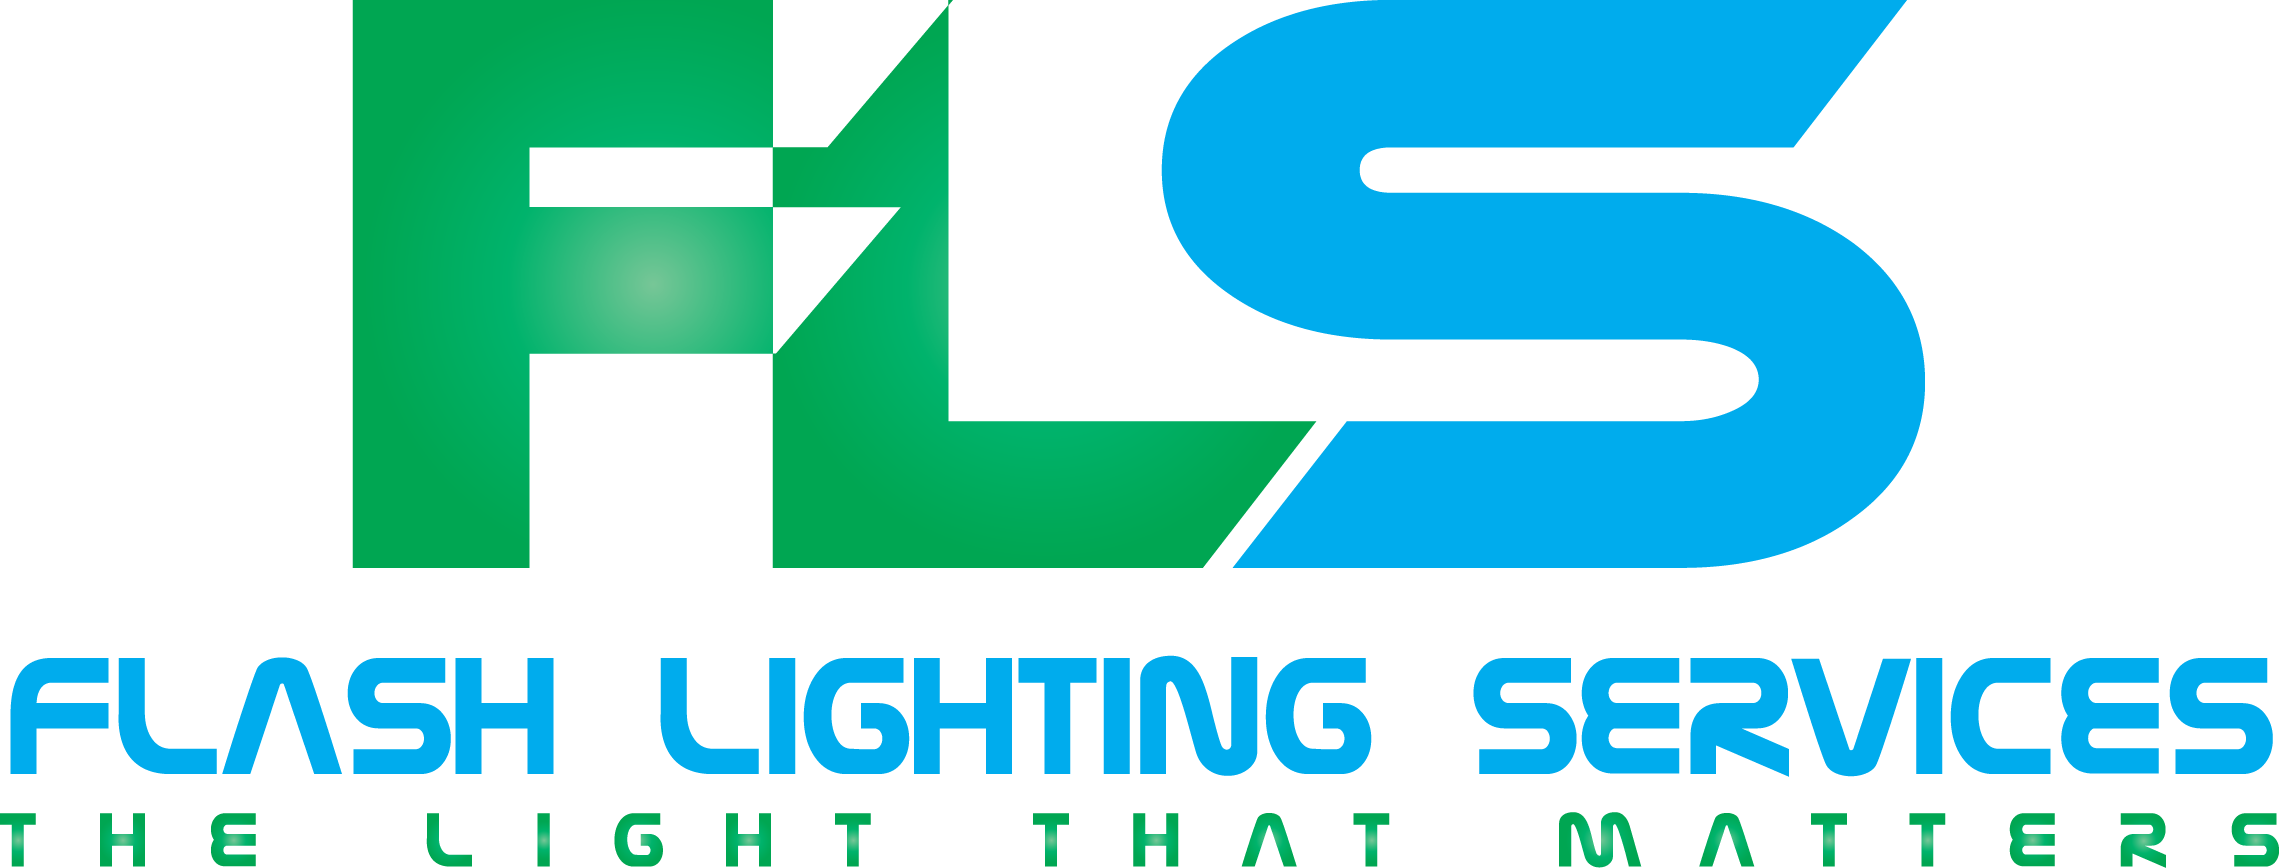 SC Flash Lighting Services SA